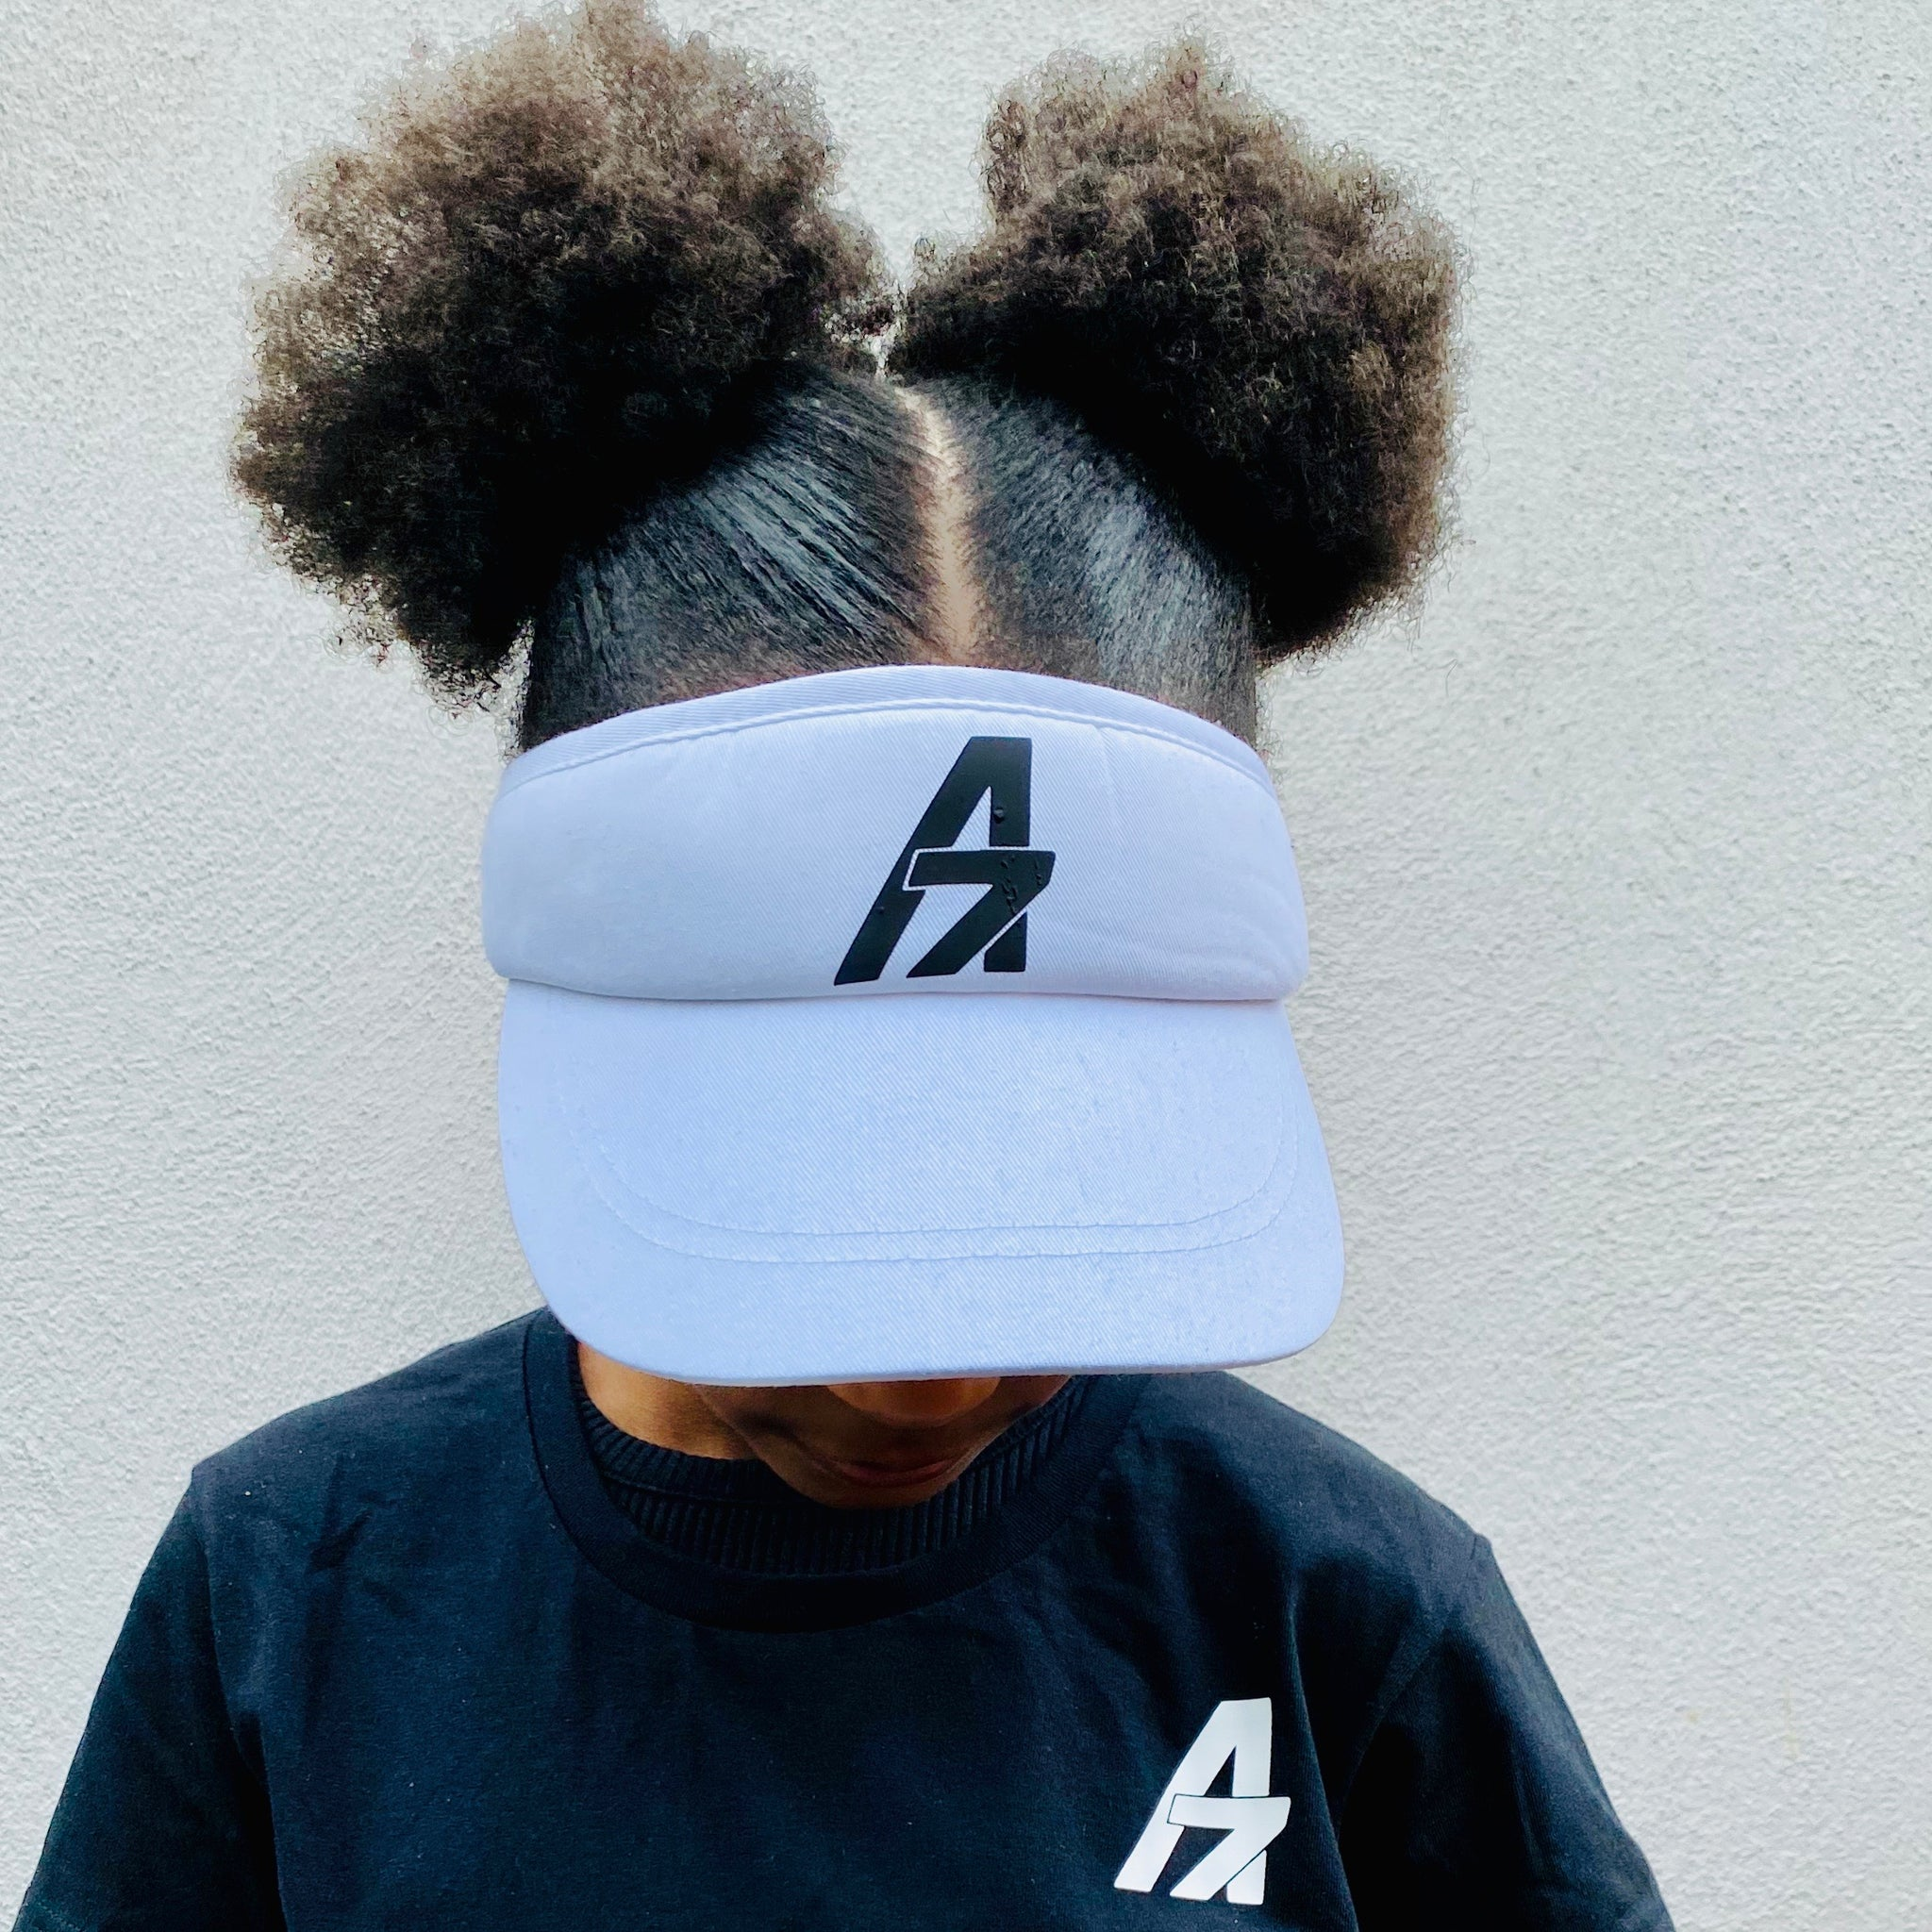 A7Asher White Visor Adult Cap, Black A7 Logo